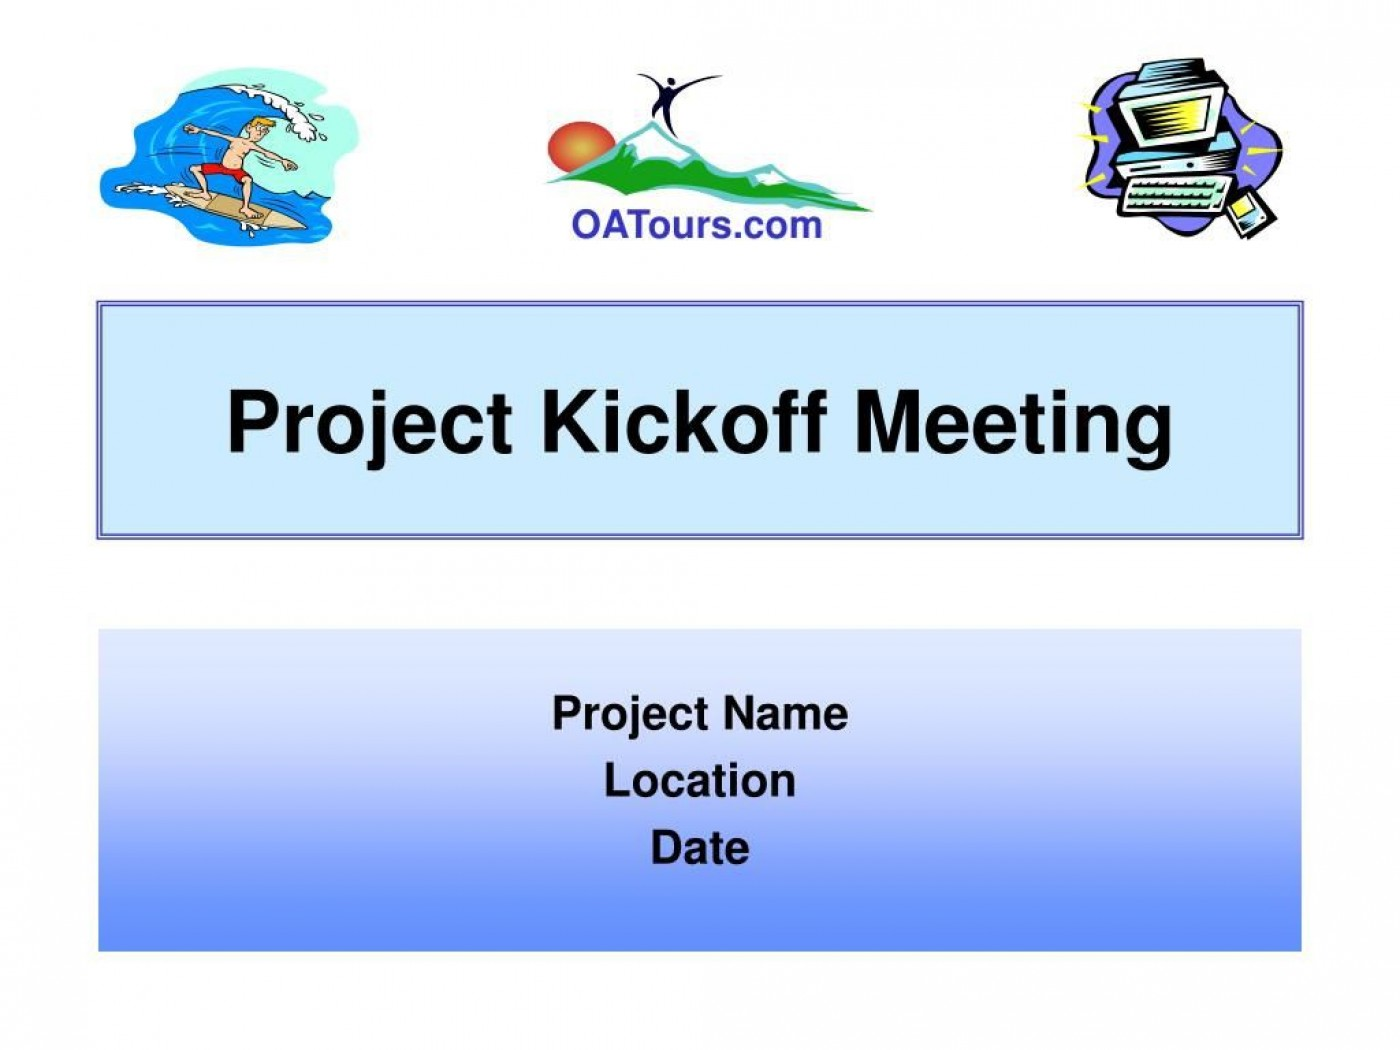 009 Imposing Project Kickoff Meeting Powerpoint Template Ppt Example  Kick Off Presentation1400